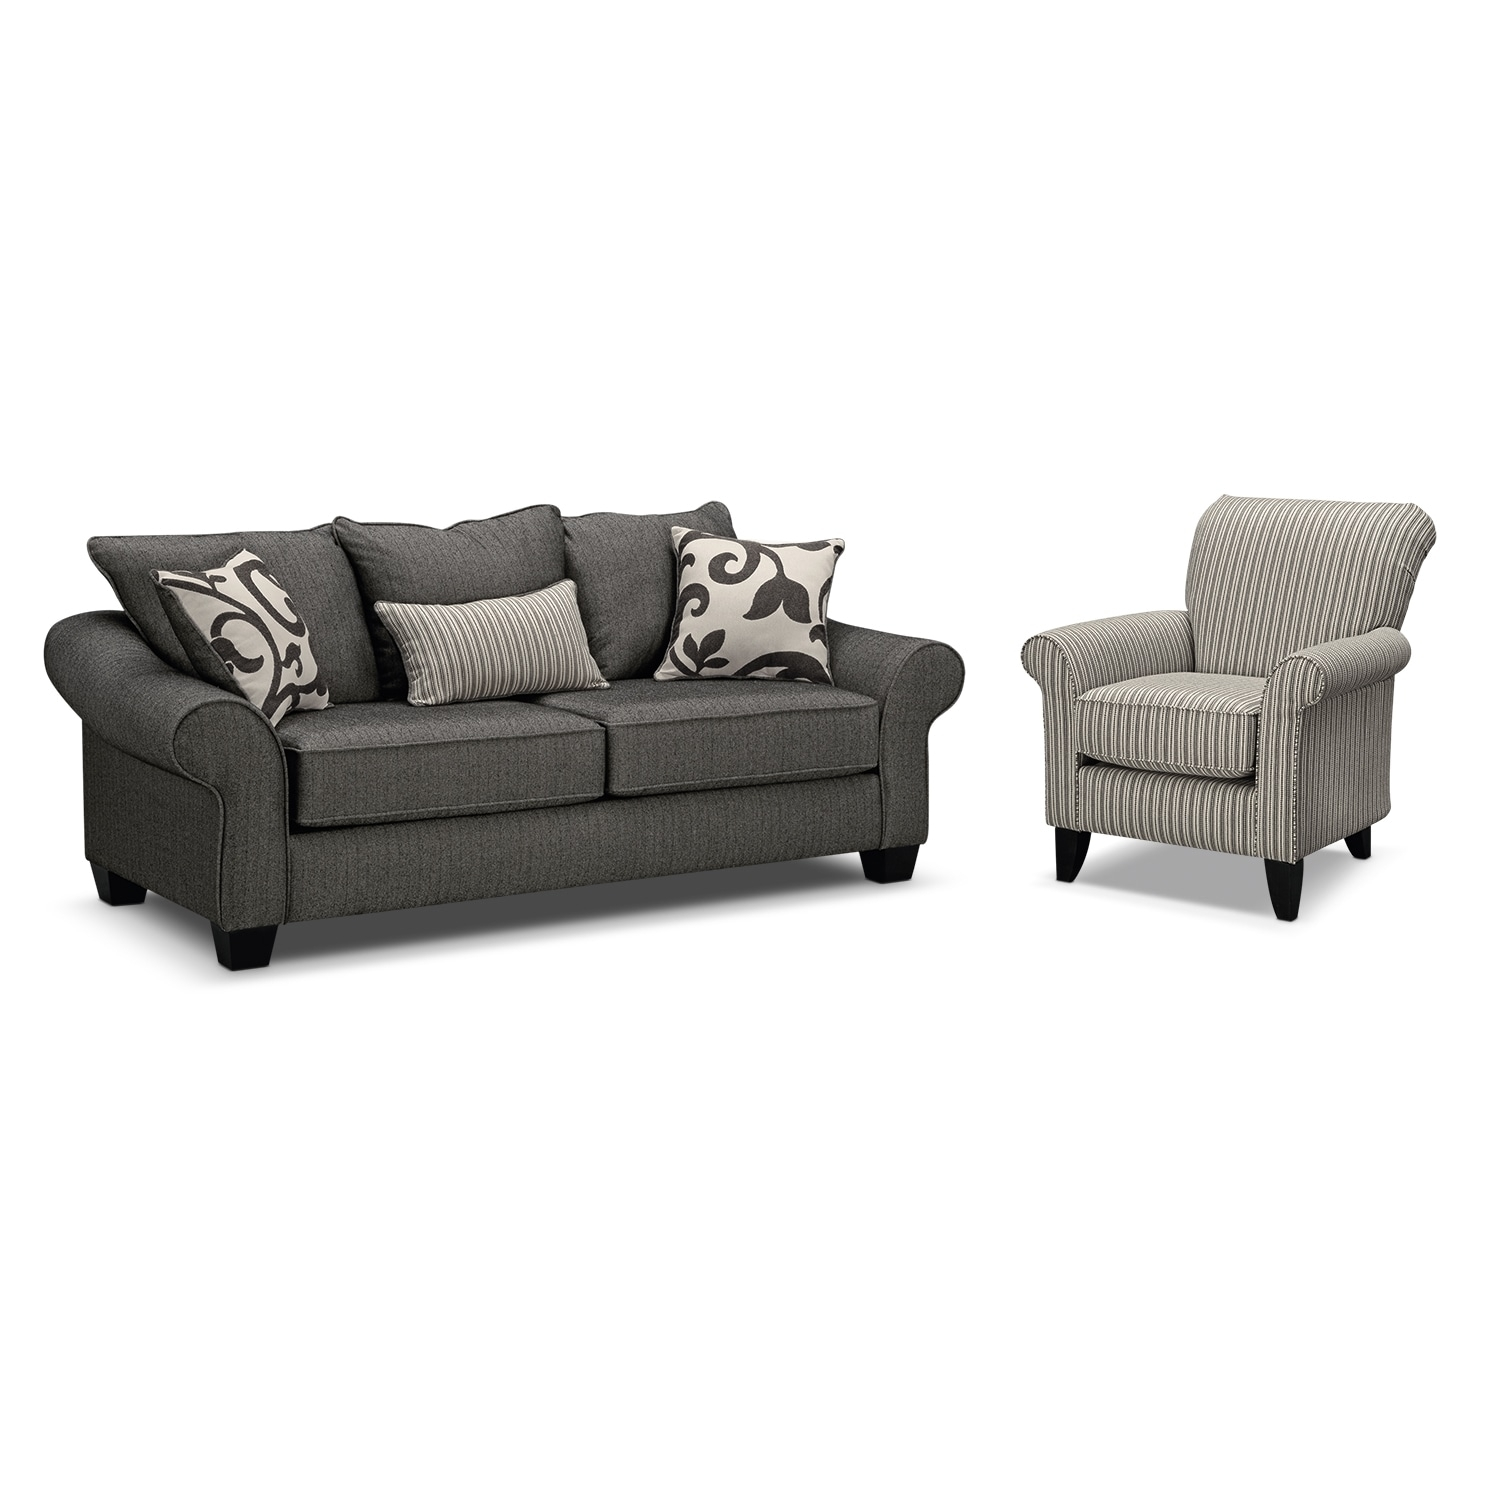 Colette Sofa And Accent Chair Set – Gray | Value City Furniture And Regarding Sofa And Accent Chair Sets (Image 6 of 10)